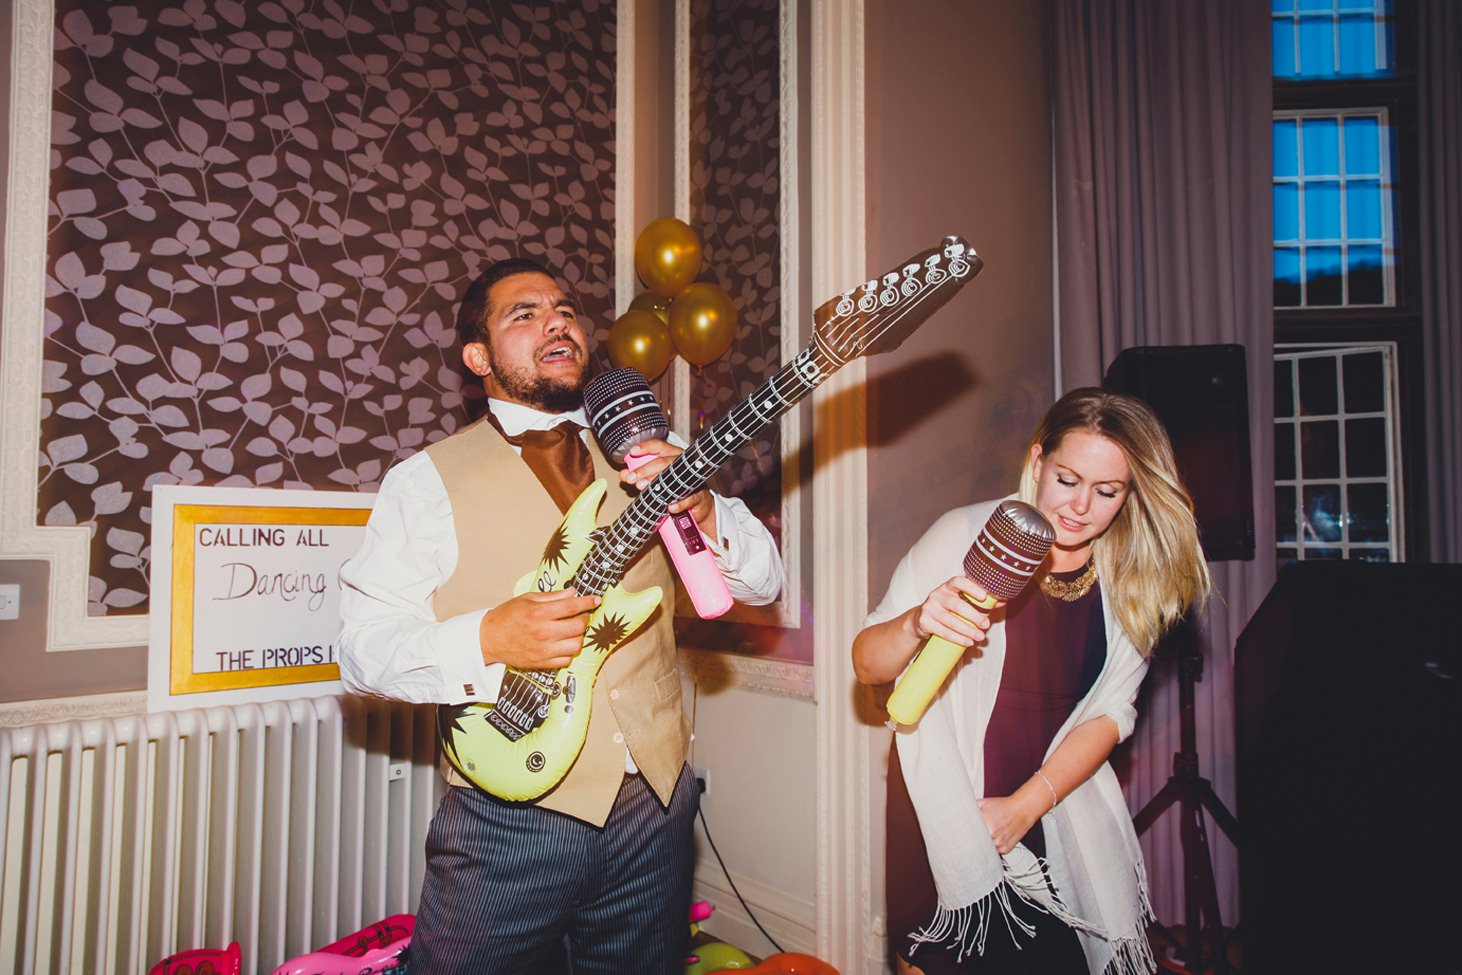 Wycombe Abbey wedding photography guests with blow up guitar